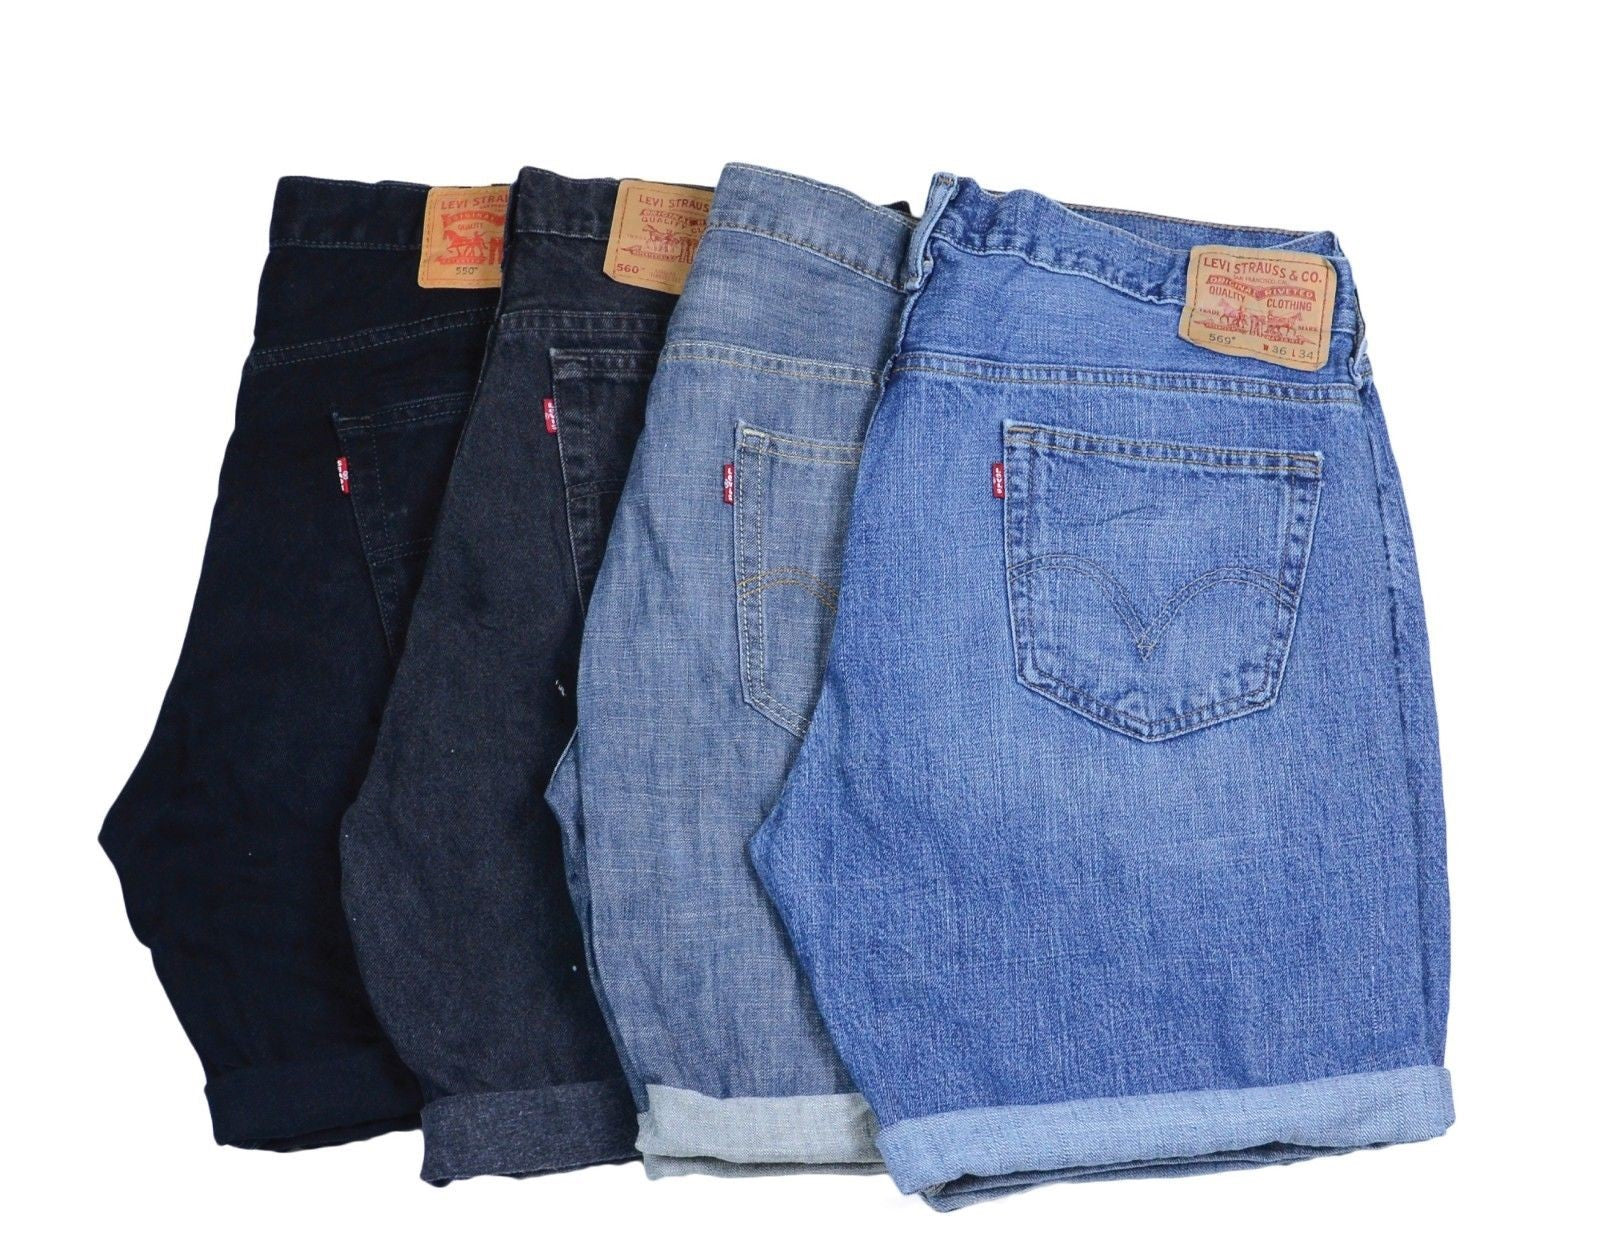 be7d01a6 Vintage Denim Mens Shorts Levi's Lee Wrangler - Shop With Your Persona    Koo Style